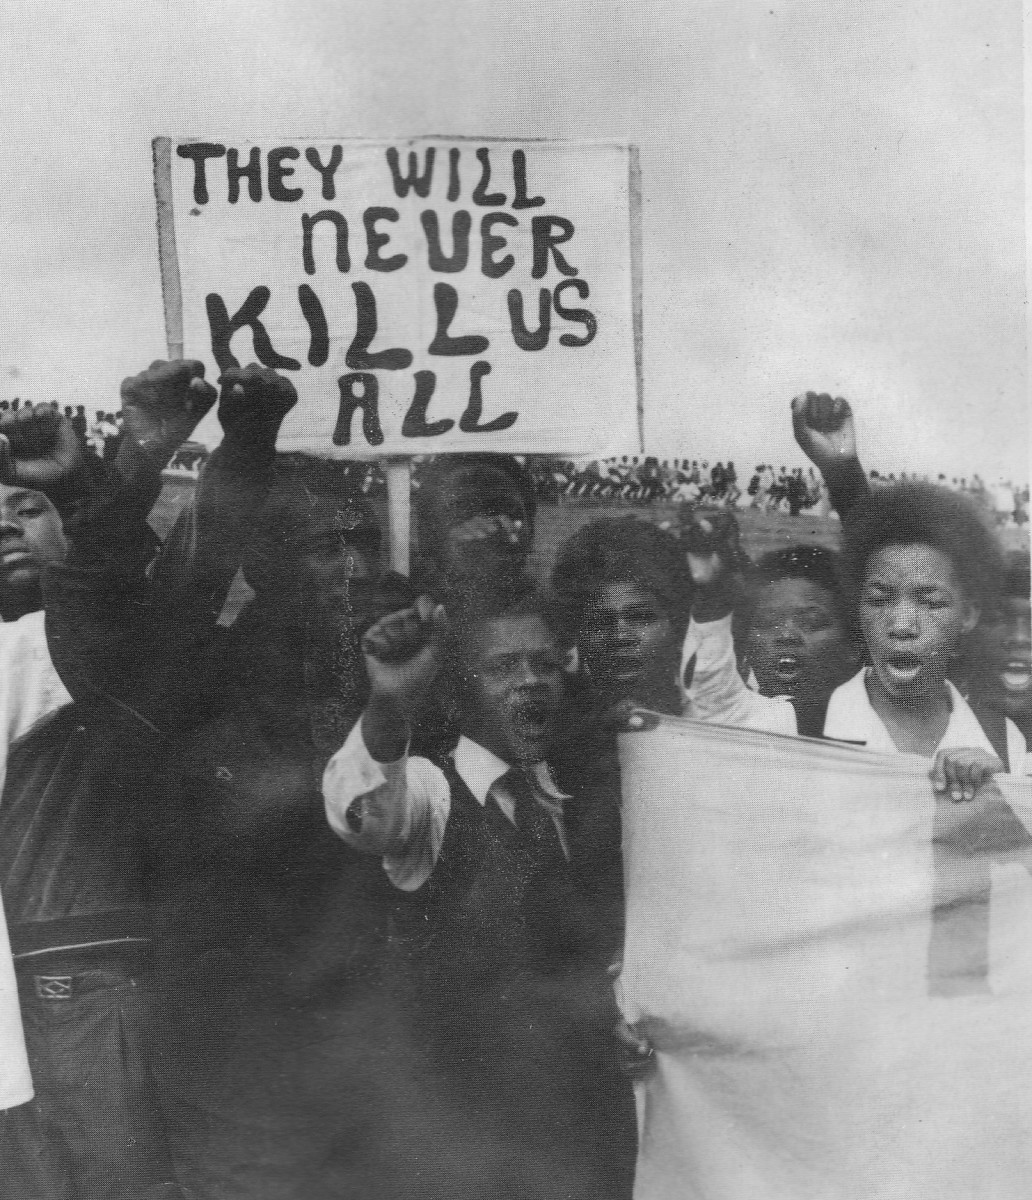 The Poster from the youth says it all. 100,000 Attended this funeral at Kwanobuhle Stadium, in Uitenhage. to show their anger and resolve